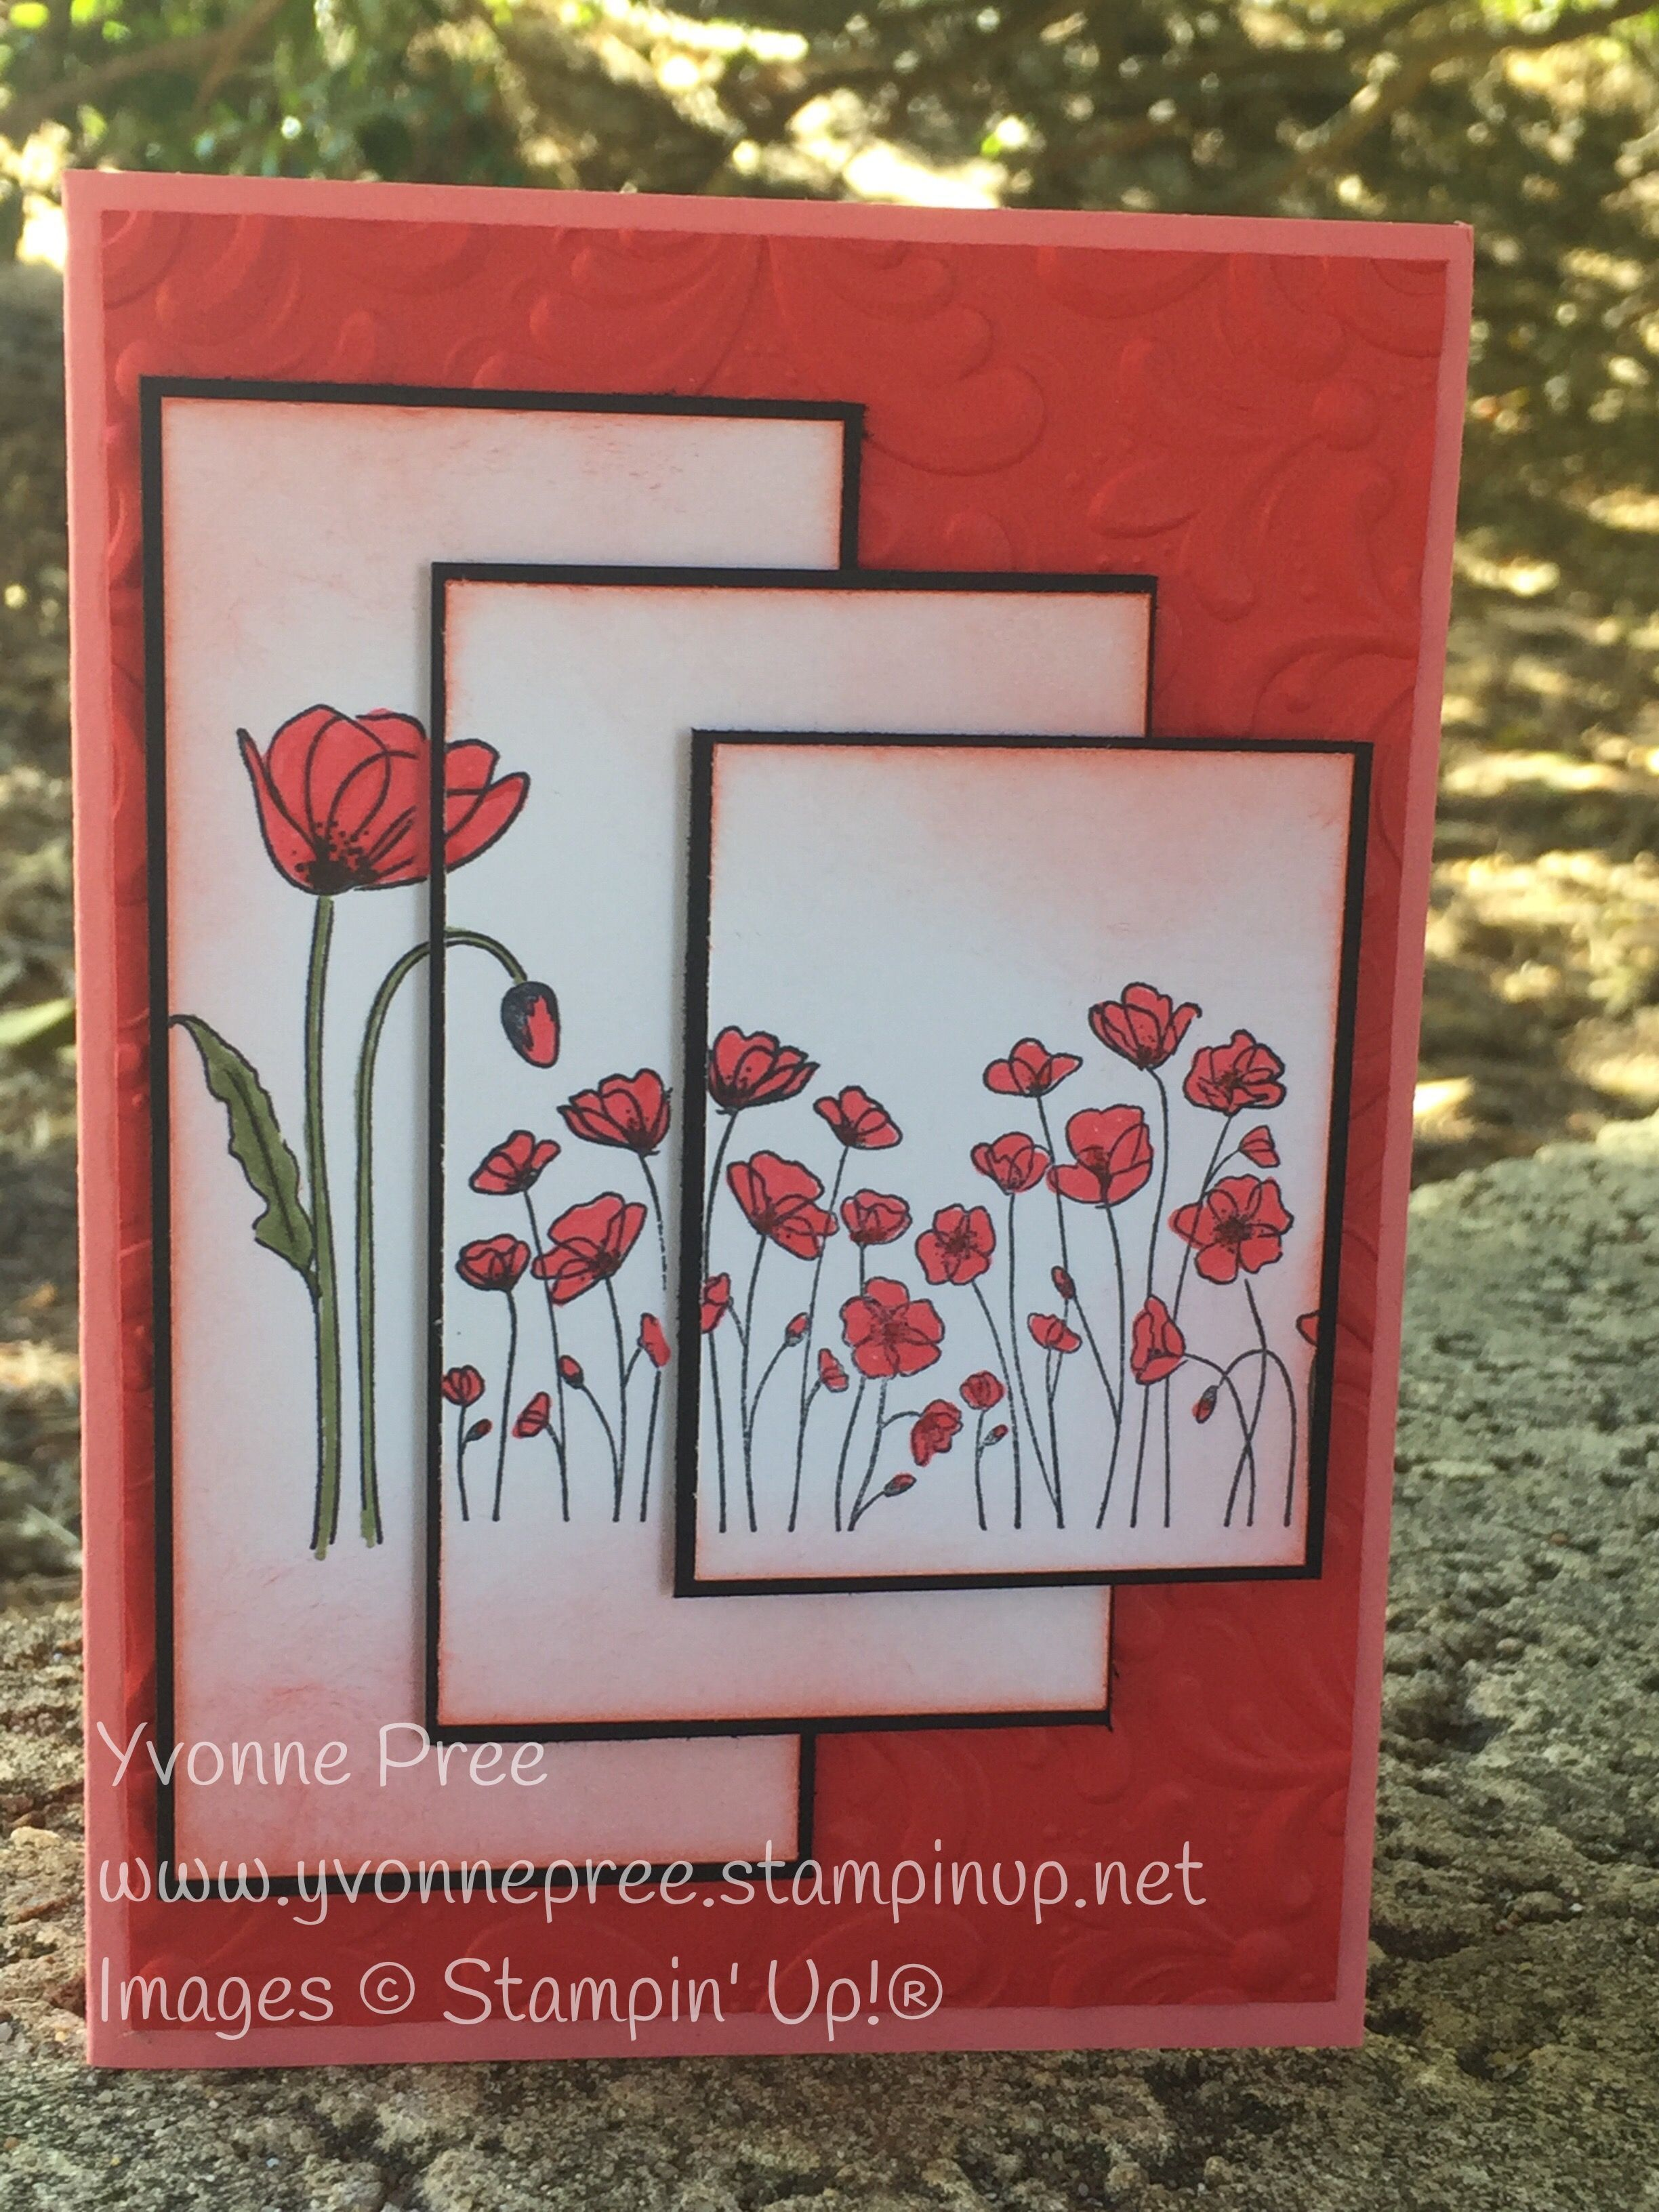 Pin By Liz Encinias On Cards To Make In 2020 Stampin Up Birthday Cards Poppy Cards Stamping Up Cards